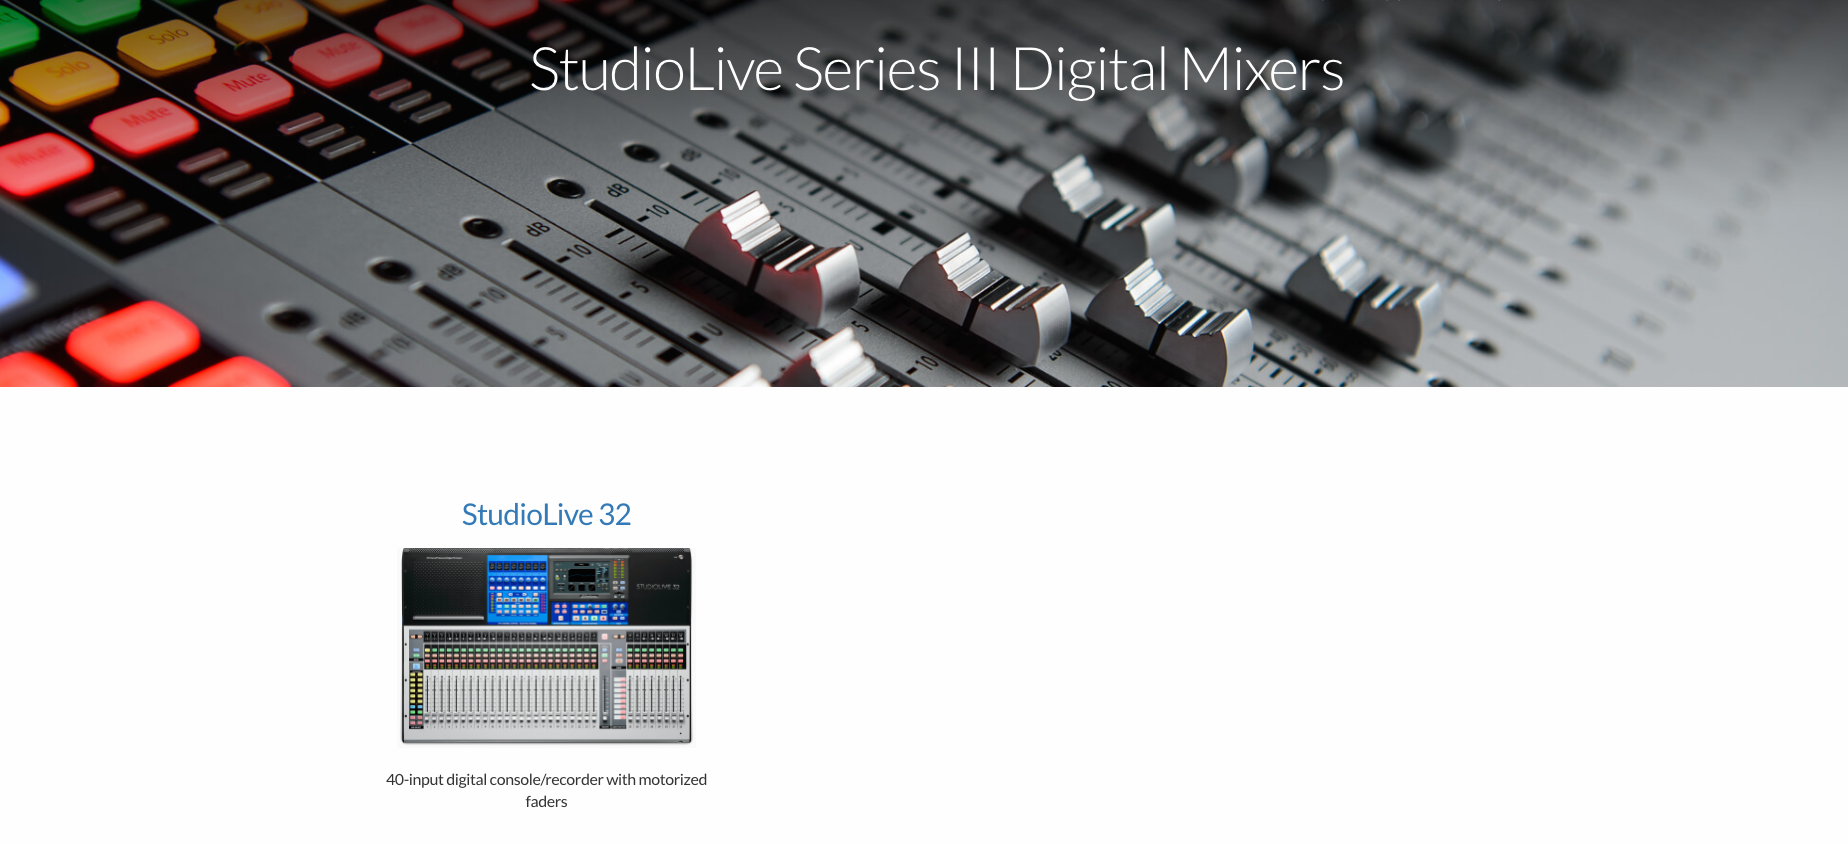 StudioLive Series III Digital Mixers